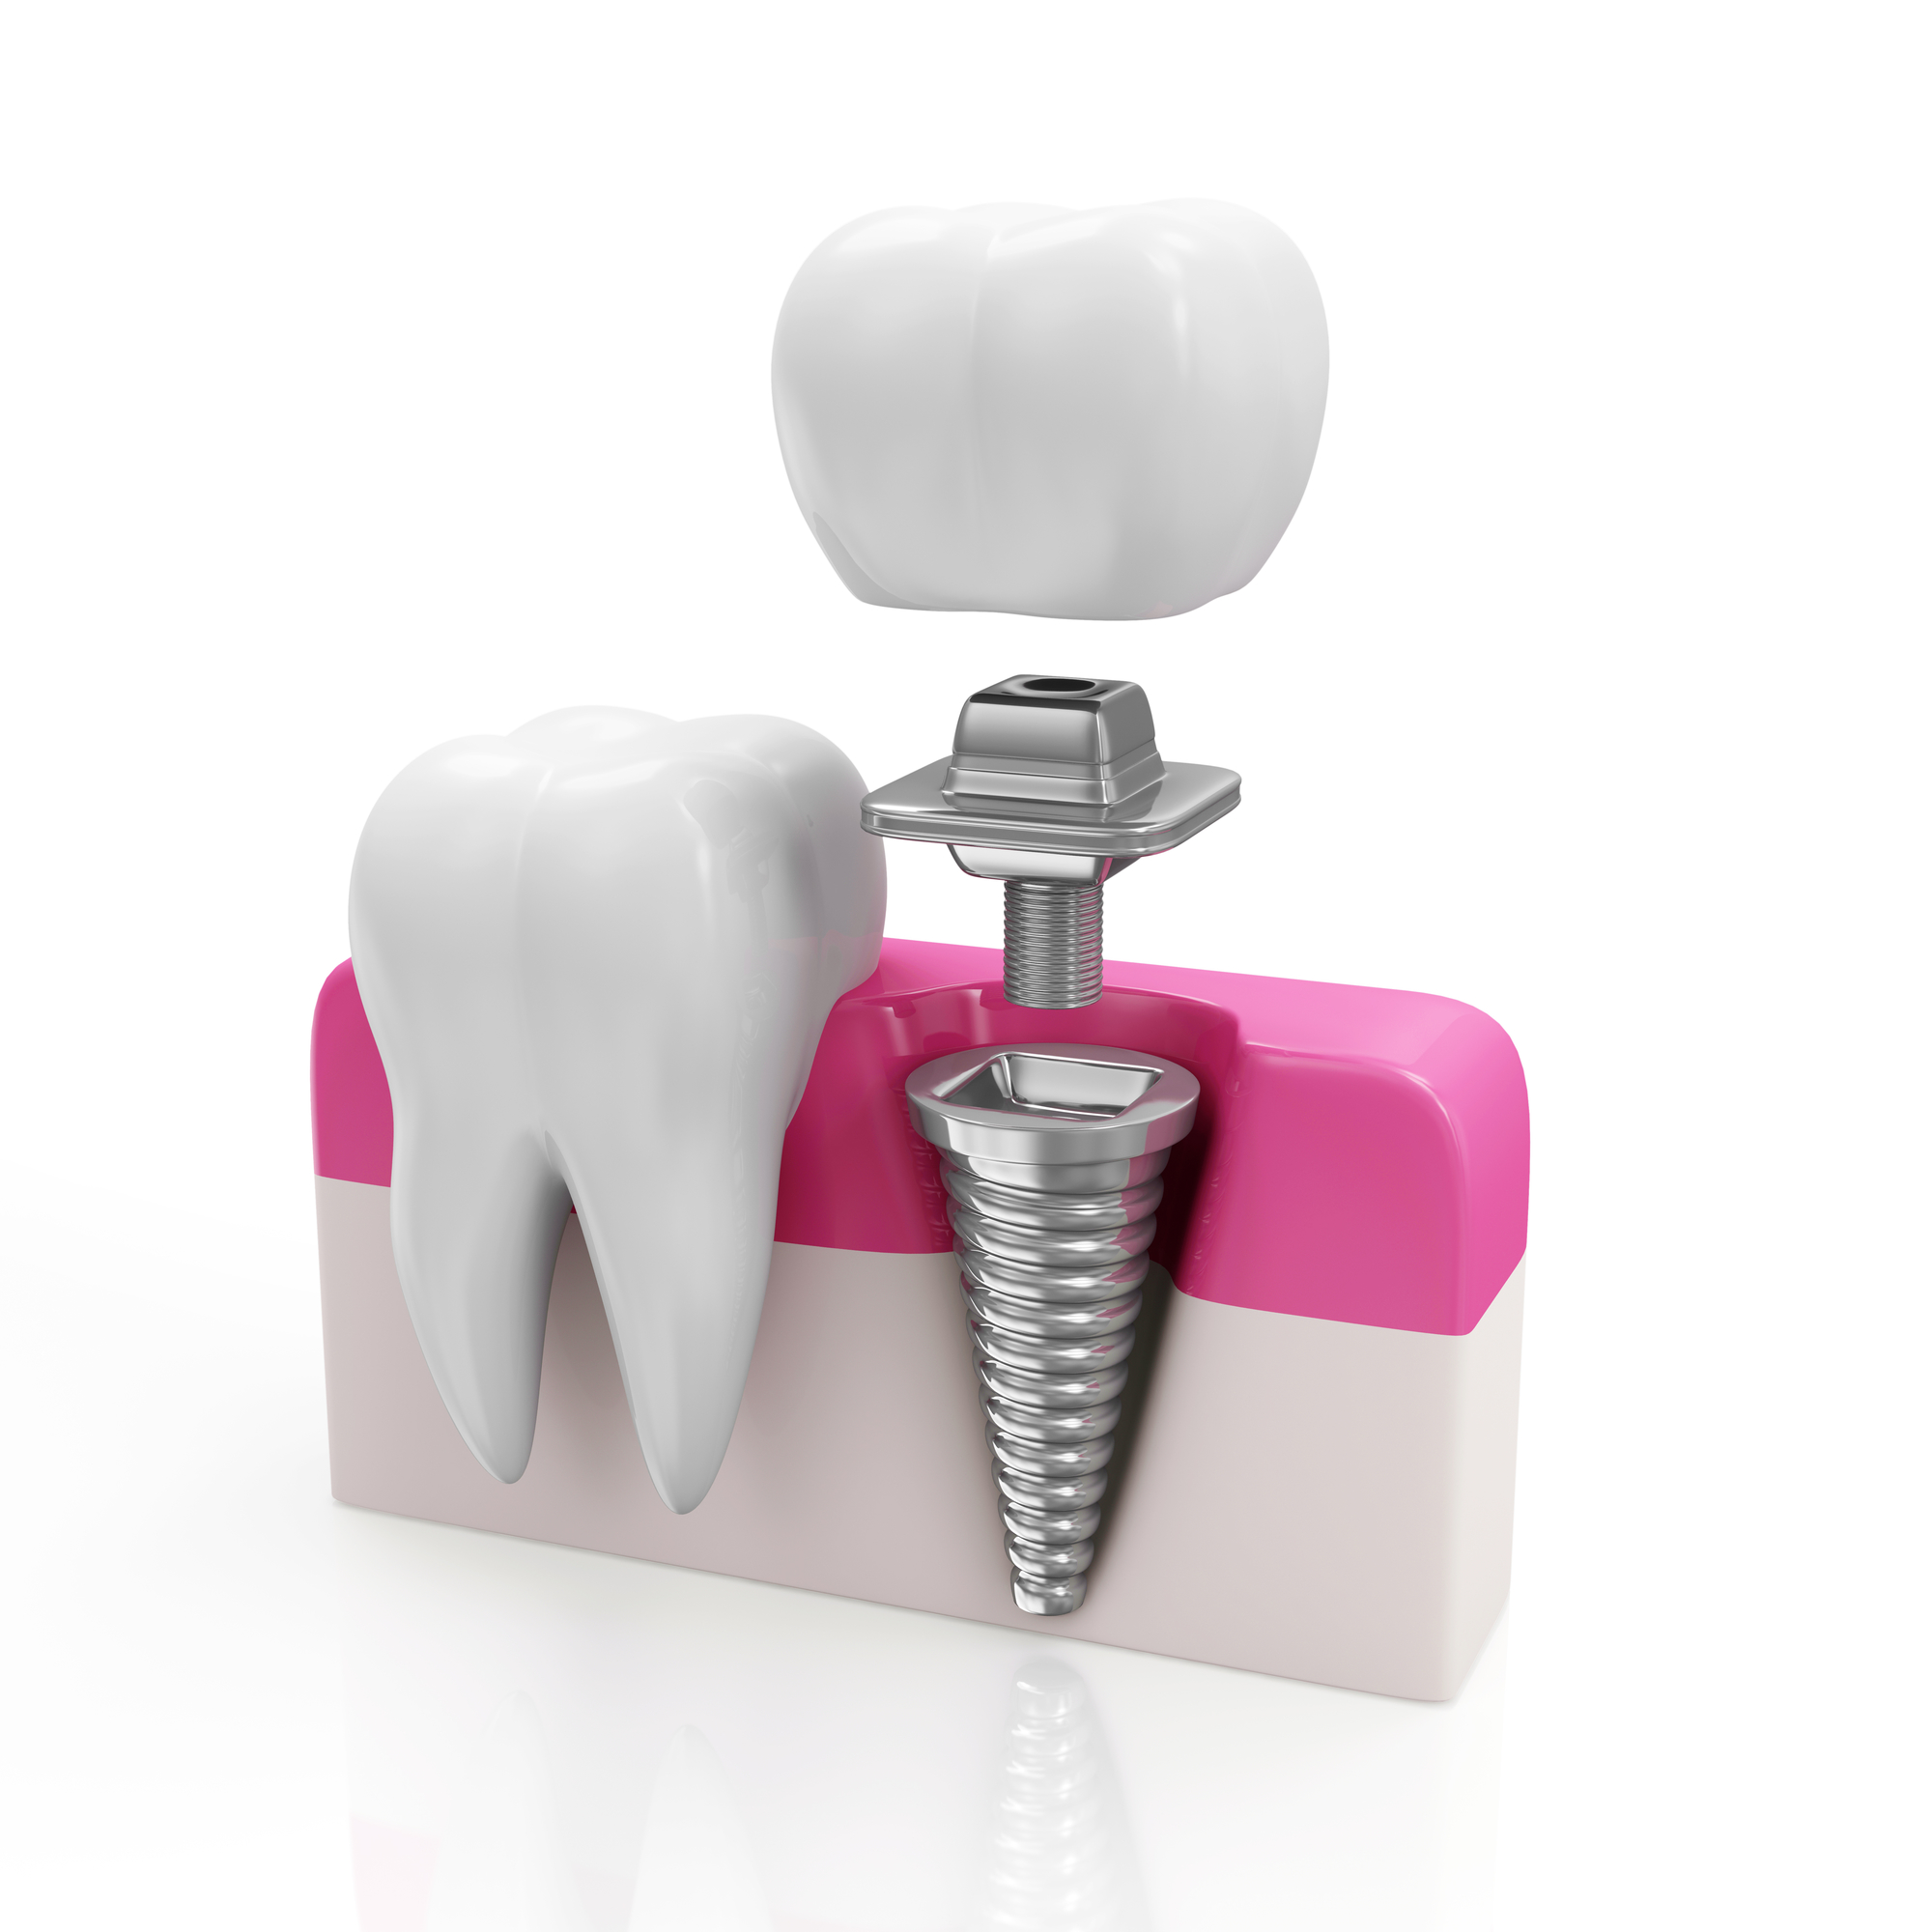 who is the best dental implants in doral for my mom?